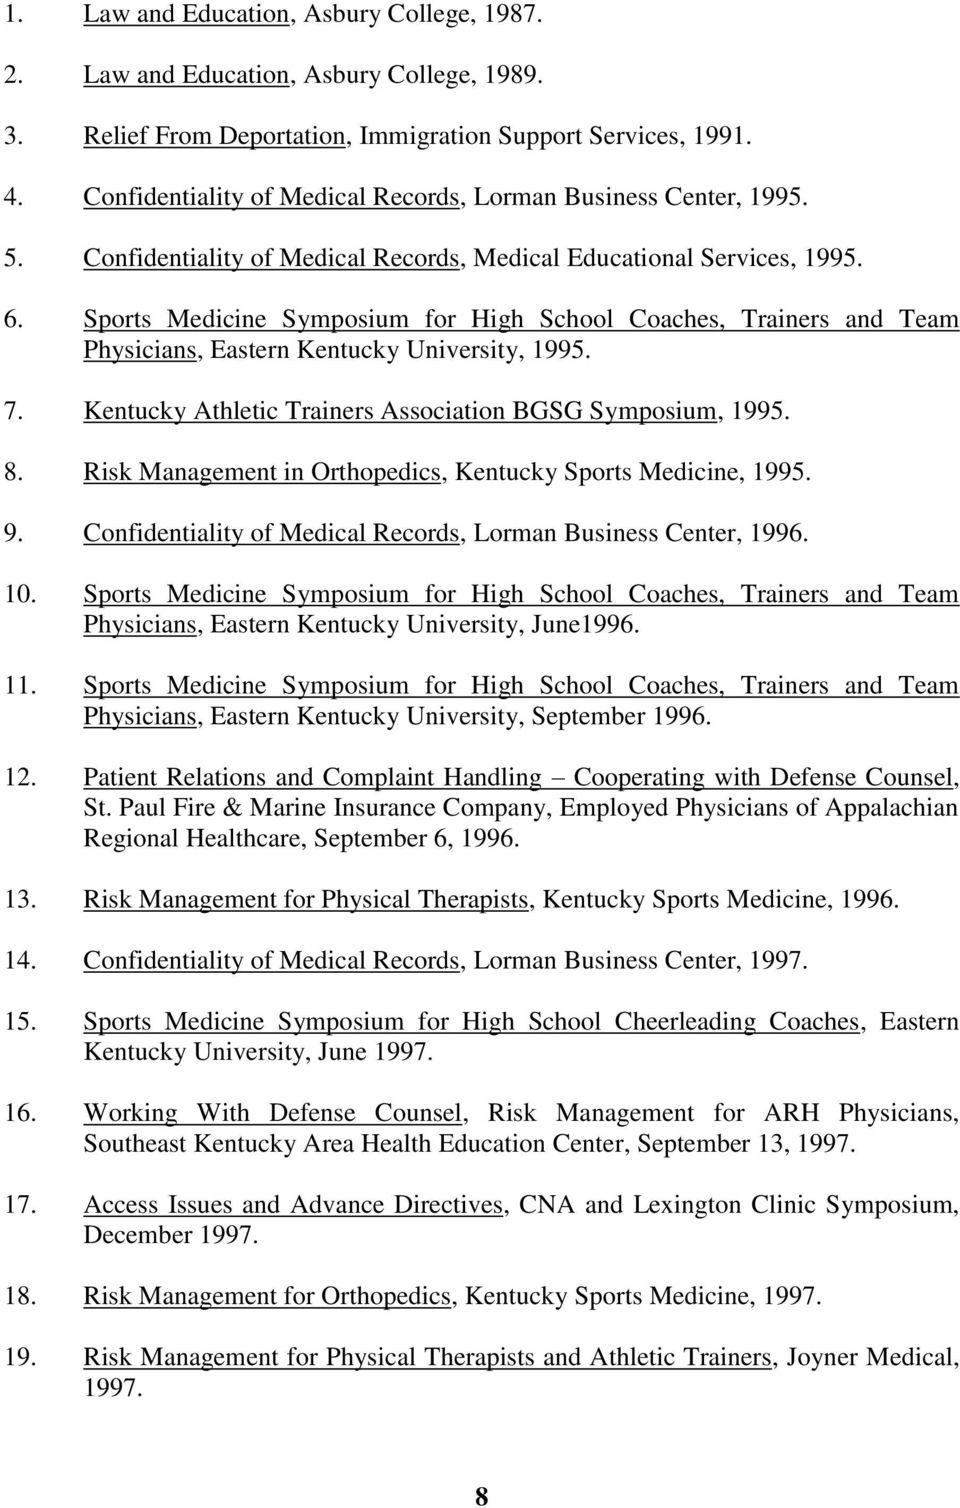 Sports Medicine Symposium for High School Coaches, Trainers and Team Physicians, Eastern Kentucky University, 1995. 7. Kentucky Athletic Trainers Association BGSG Symposium, 1995. 8.